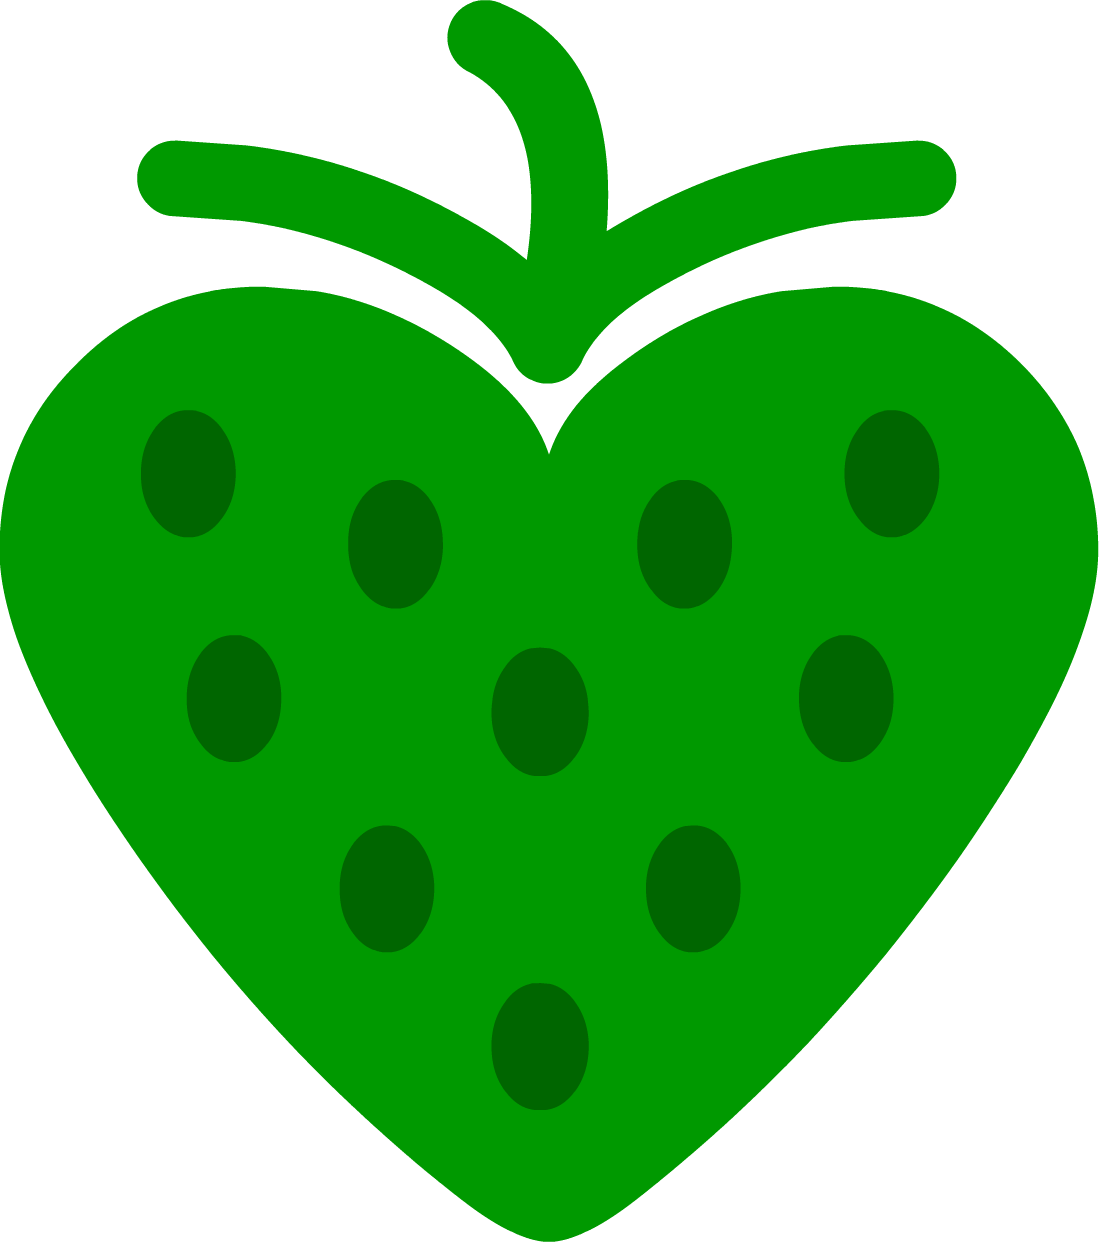 strawberry heart GREEN